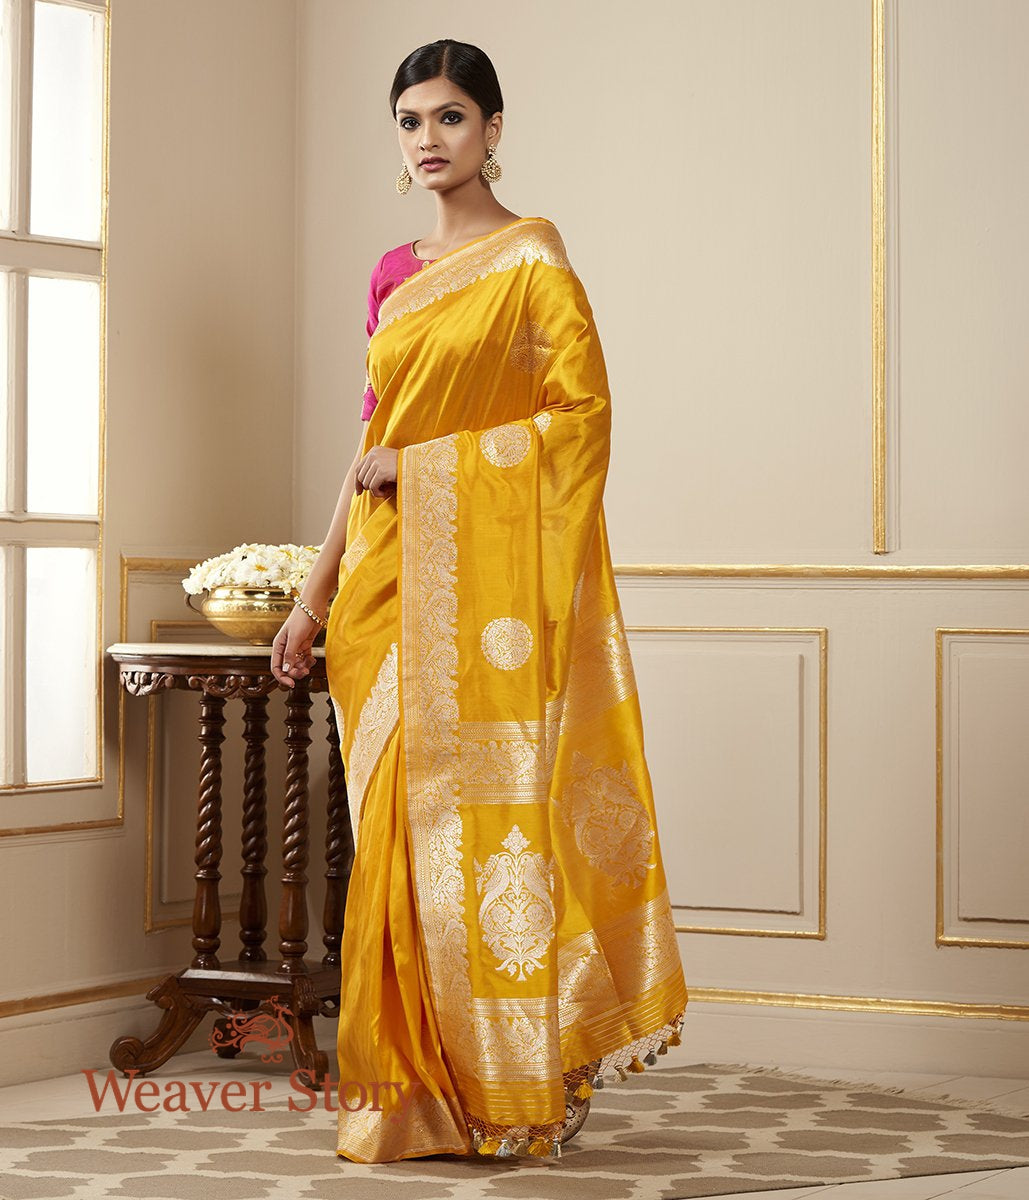 Handwoven Mustard Yellow Banarasi Katan Silk Saree with Kadhwa Booti